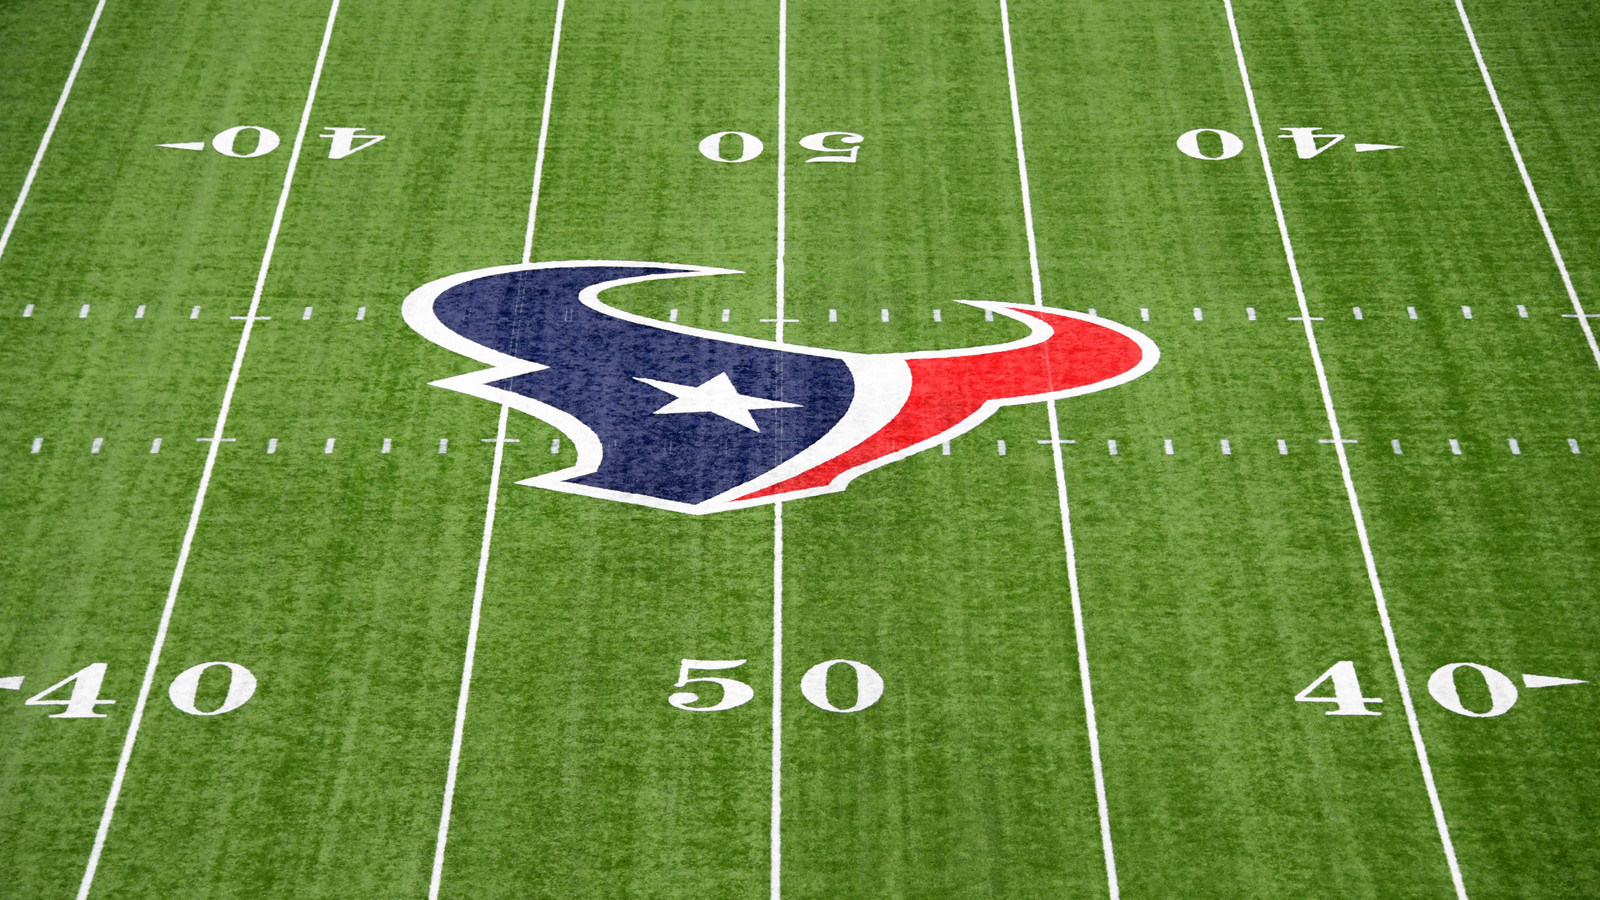 Jaguars vs. Texans Will Be Played in Houston, Says Bill O'Brien